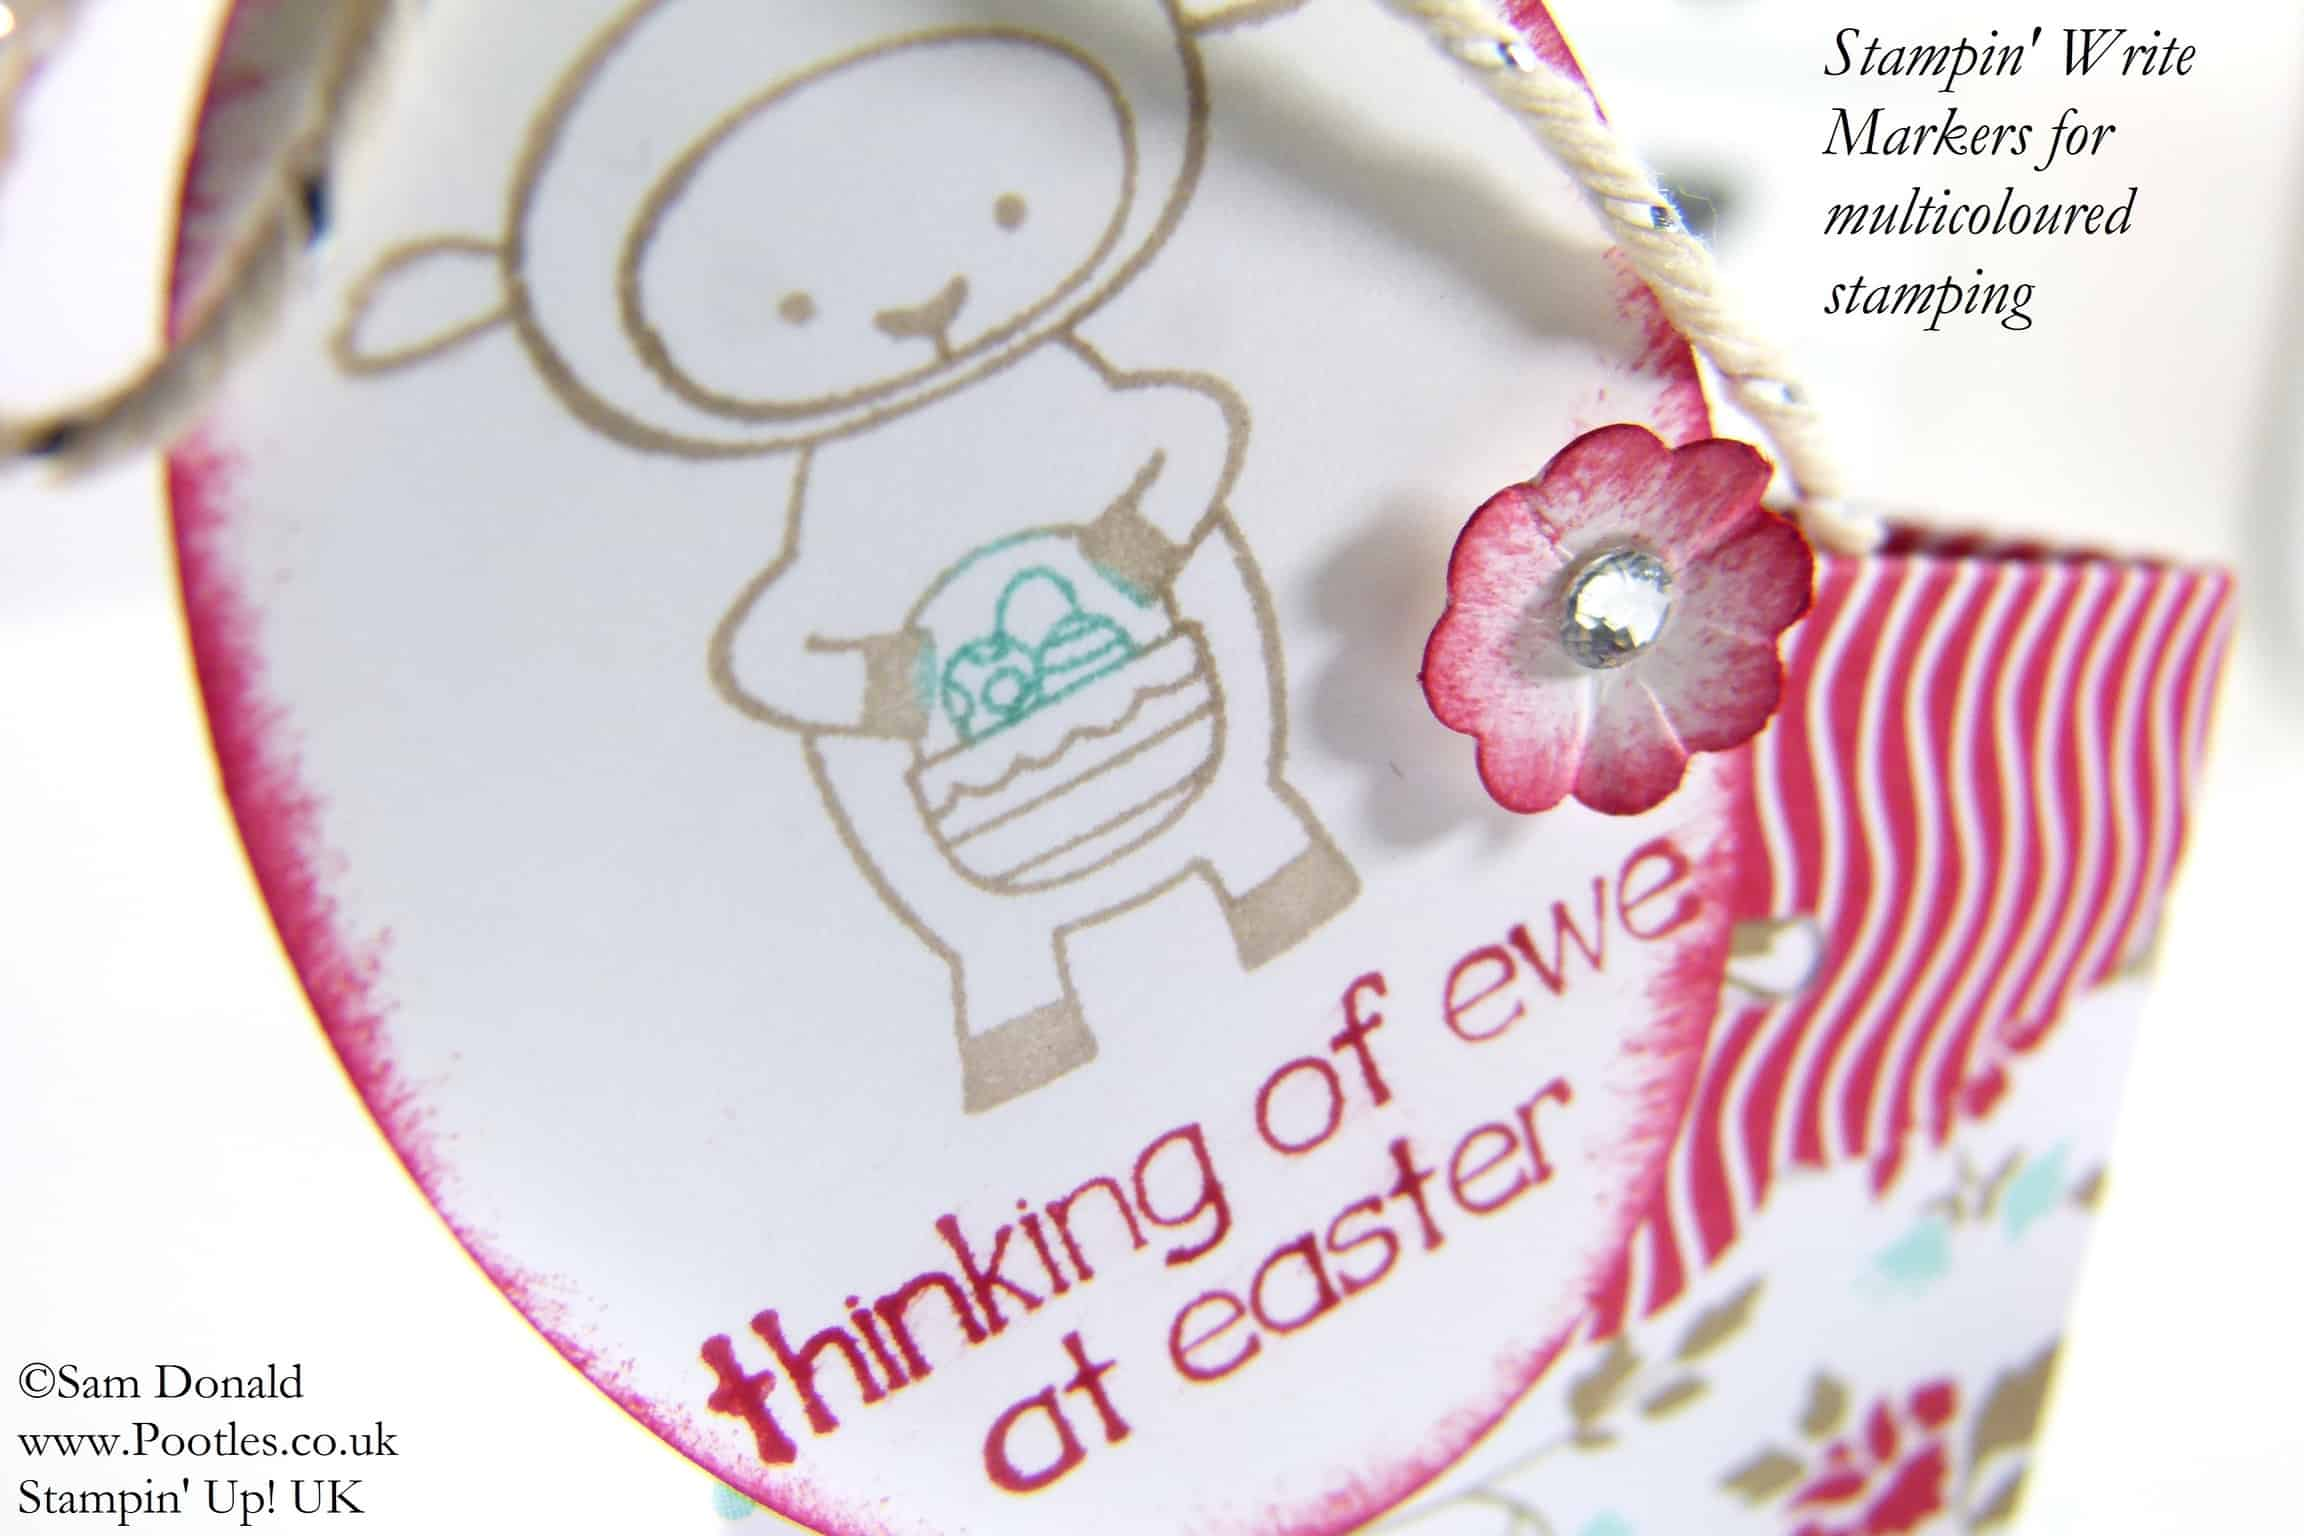 POOTLES Stampin' Up! UK Tag Topper Tri Sided Easter Egg Caddy close up